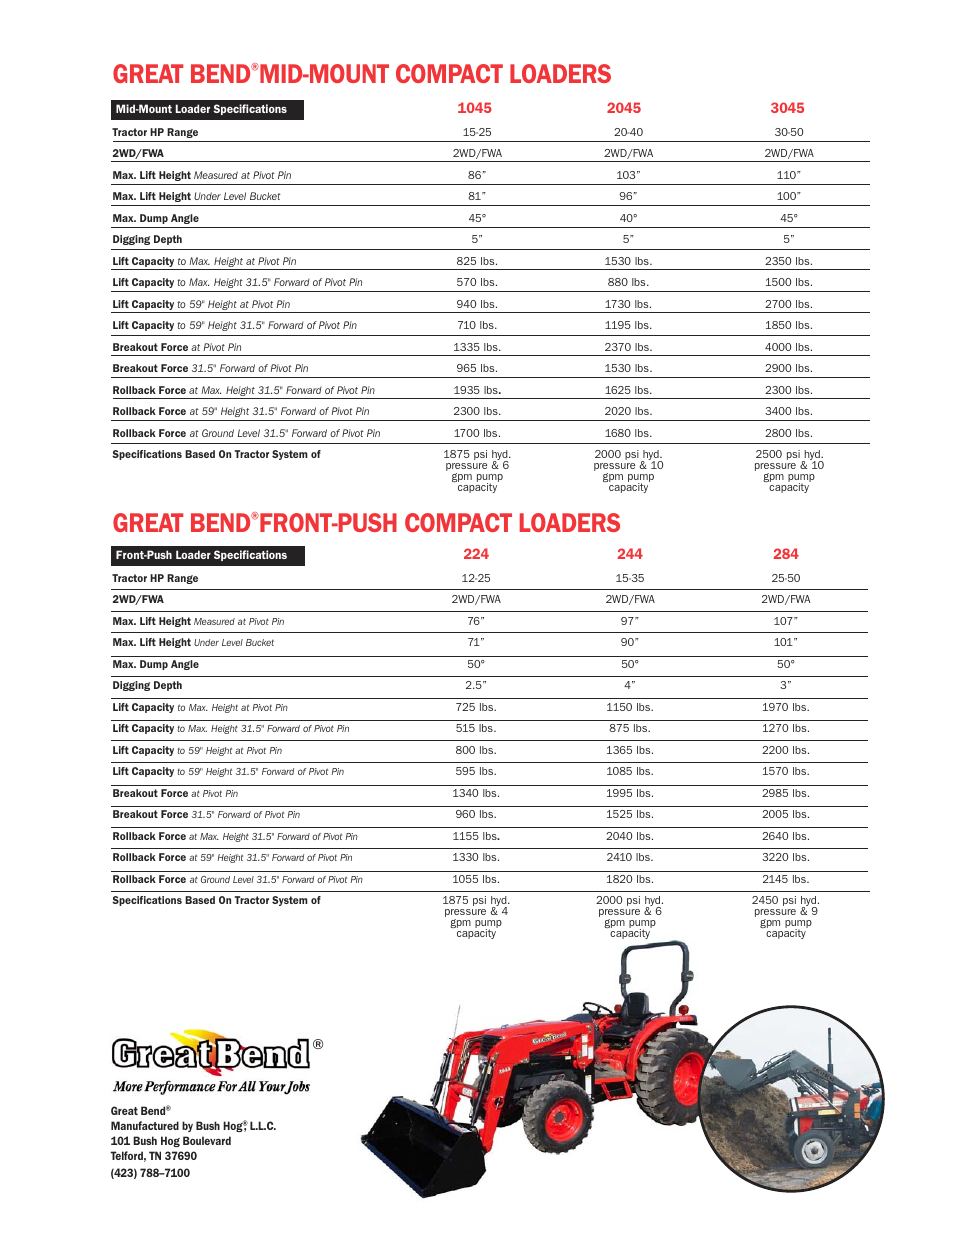 Bush Hog Great Bend 3045 User Manual | 1 page | Also for: Great Bend